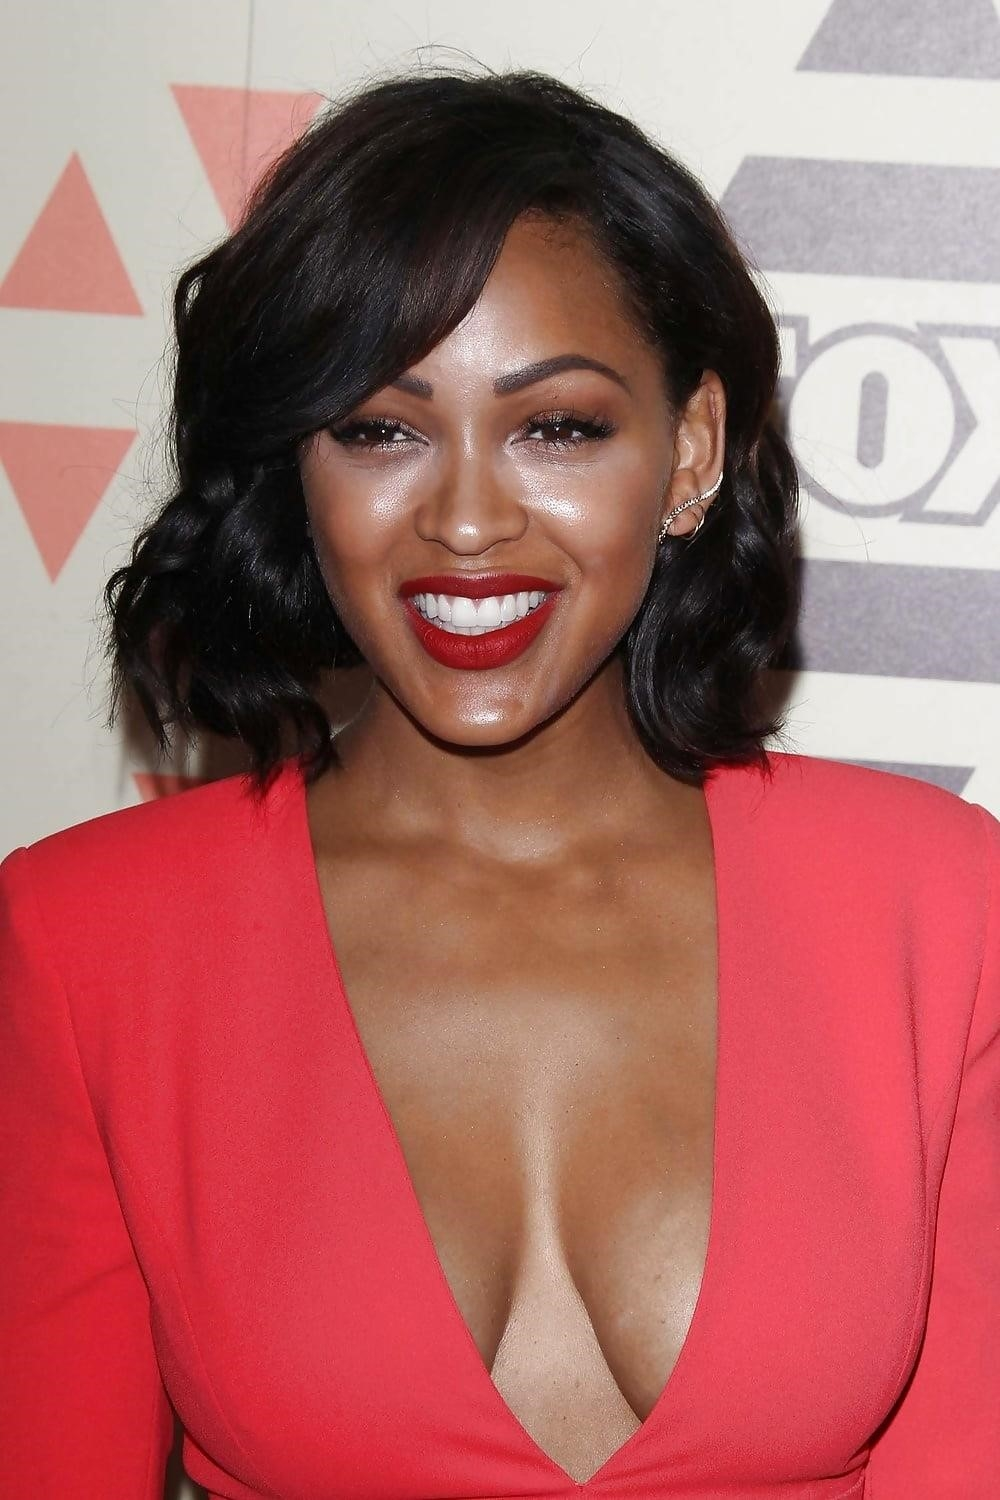 Meagan good nude pictures-8794